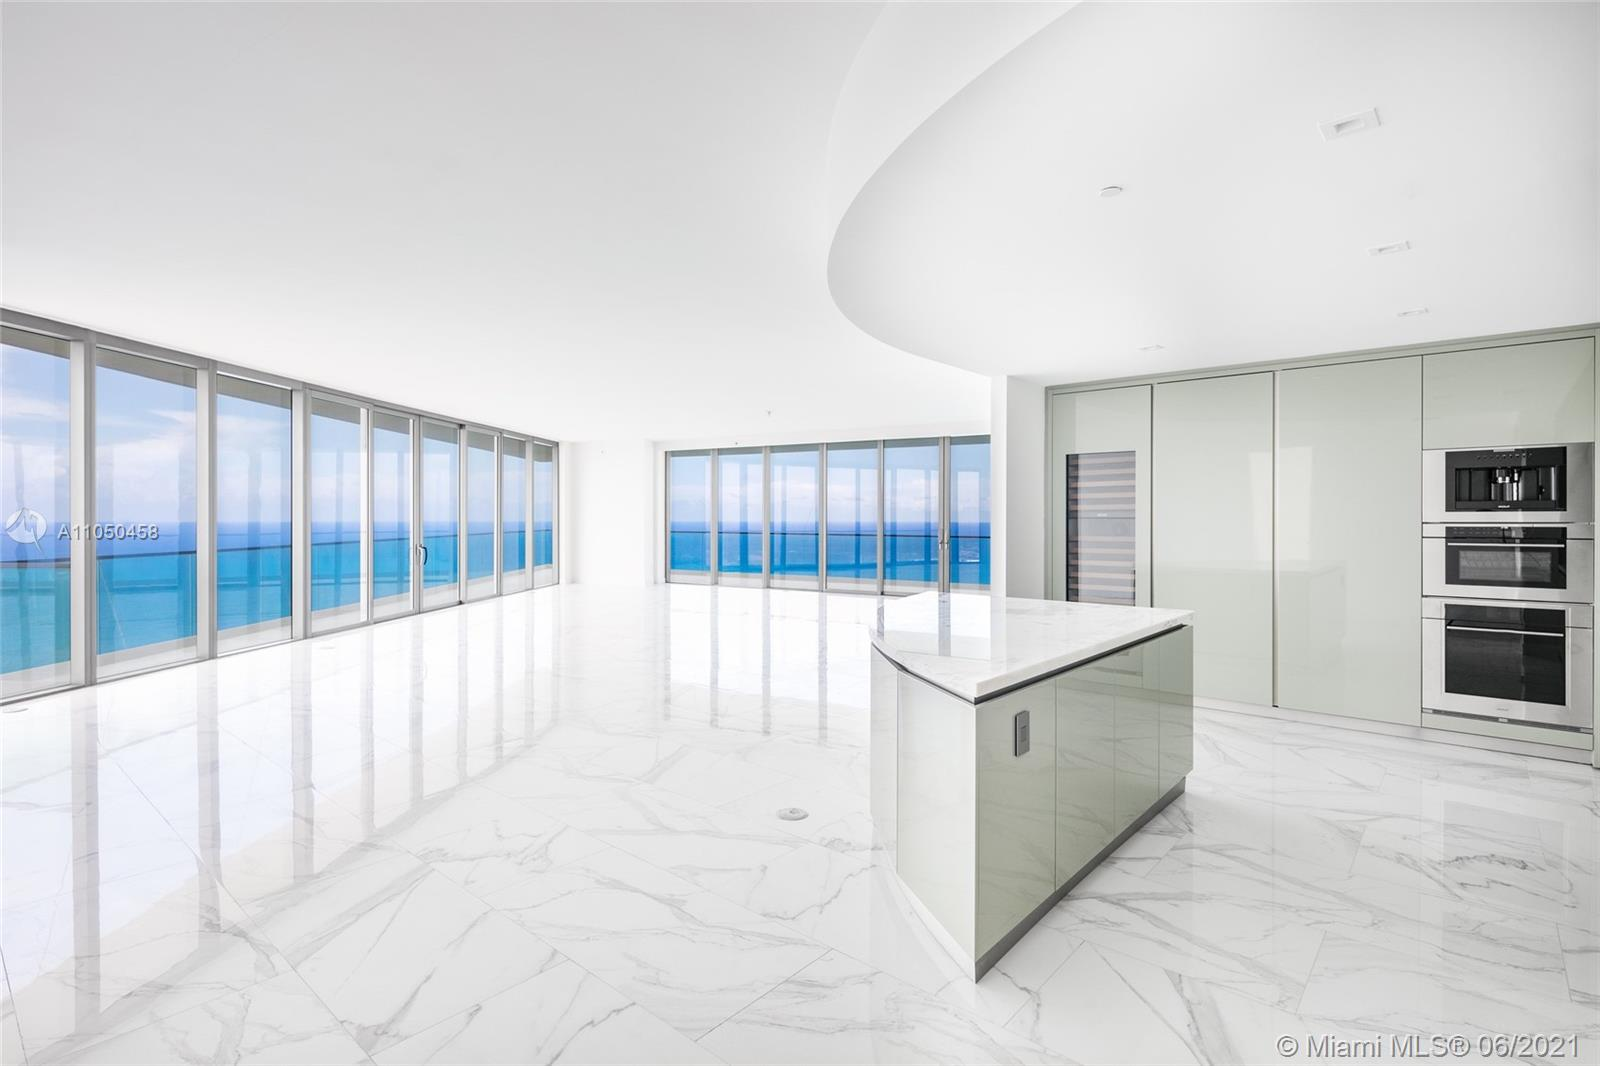 """Highest Floor Available in the Best Line """"00"""" at Residences at Armani Casa. Residence #5100, finished with oversized Italian tile, is the largest corner layout (4bed/5.5 bath + Service) and the only line with a private foyer. Enjoy breathtaking direct ocean and sweeping intracoastal views from all areas. The interior living space is spacious, modern & elegant with 10 Ft ceilings. Expansive 10 foot-deep balconies with summer kitchen create a seamless expansion of living space into the fresh air. Sleek European kitchen. Smart residence w/digital thermostat. Impeccable main suite with midnight bar, his & hers baths with breathtaking ocean view. Armani Casa residents can indulge in beach service, full service spa, private restaurant, game room, cigar/wine room, & child's play room."""